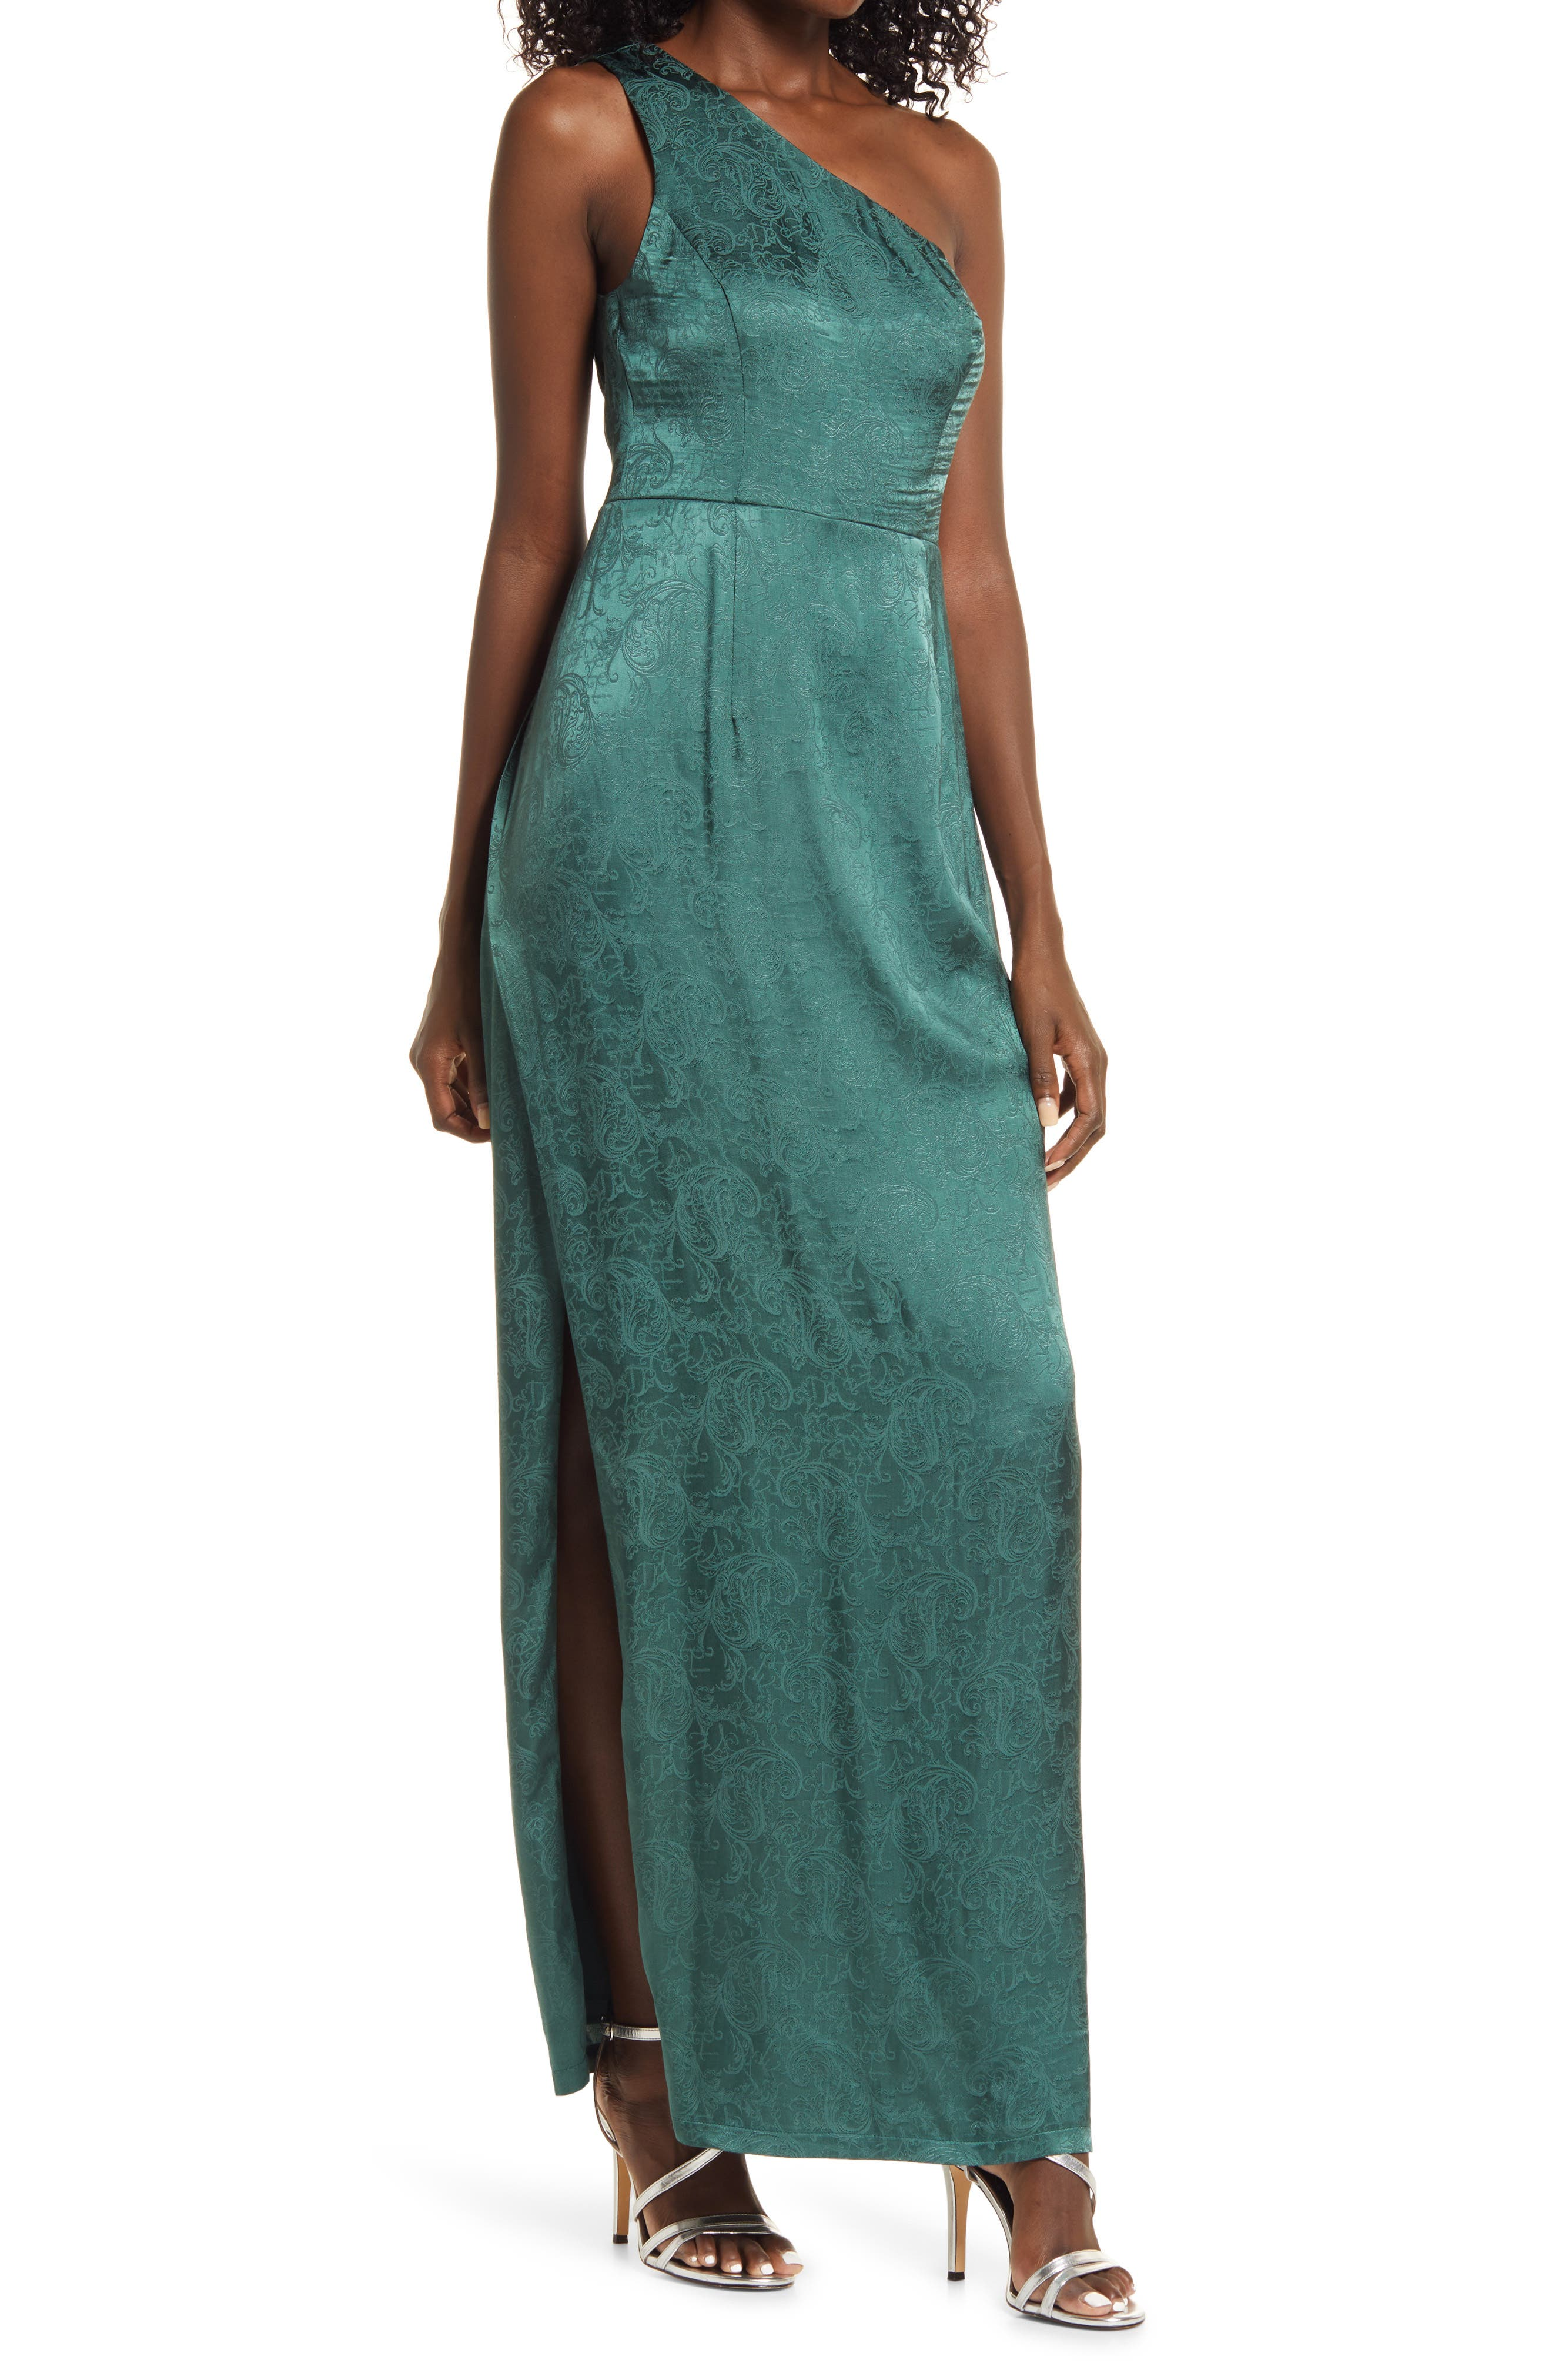 70s Sequin Dresses, Disco Dresses Womens Lulus Deeply Devoted One-Shoulder Jacquard Gown Size X-Small - Green $88.00 AT vintagedancer.com